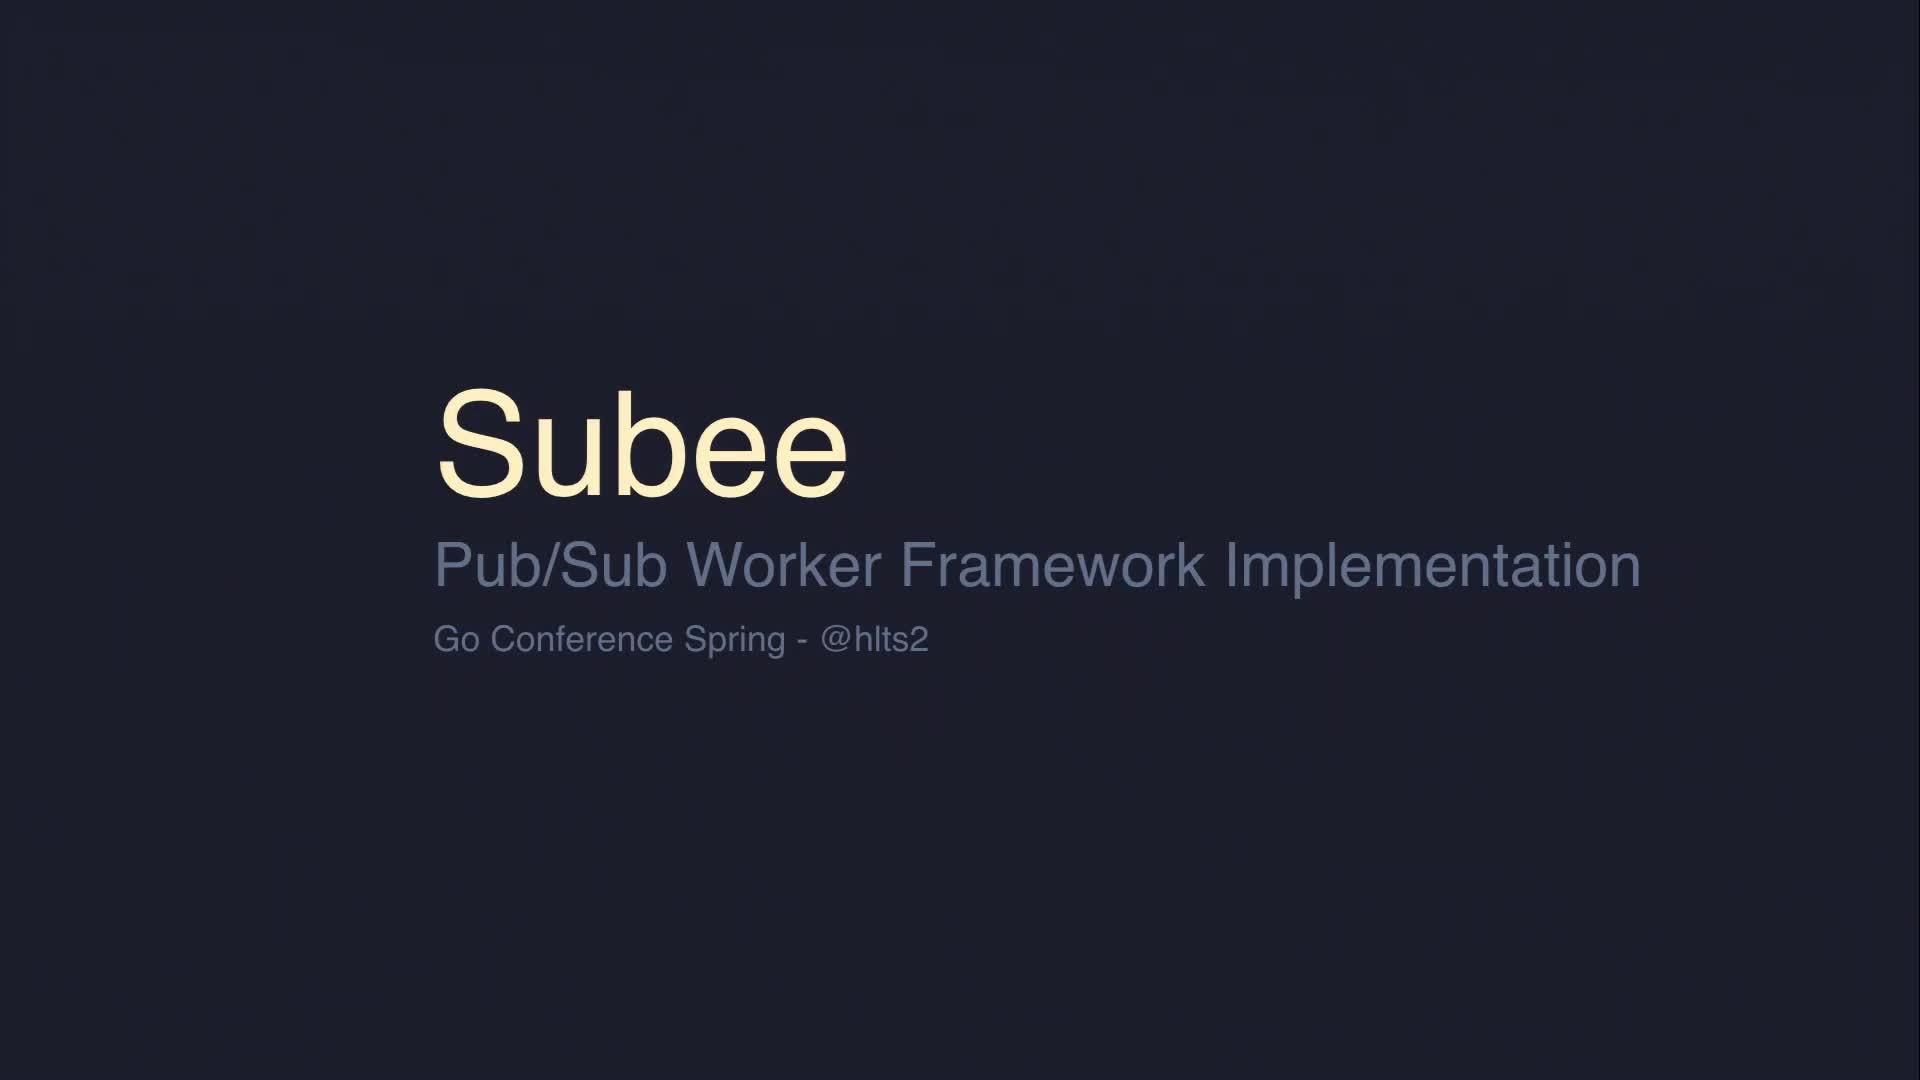 Subee Pub/Sub Worker Framework Implementation